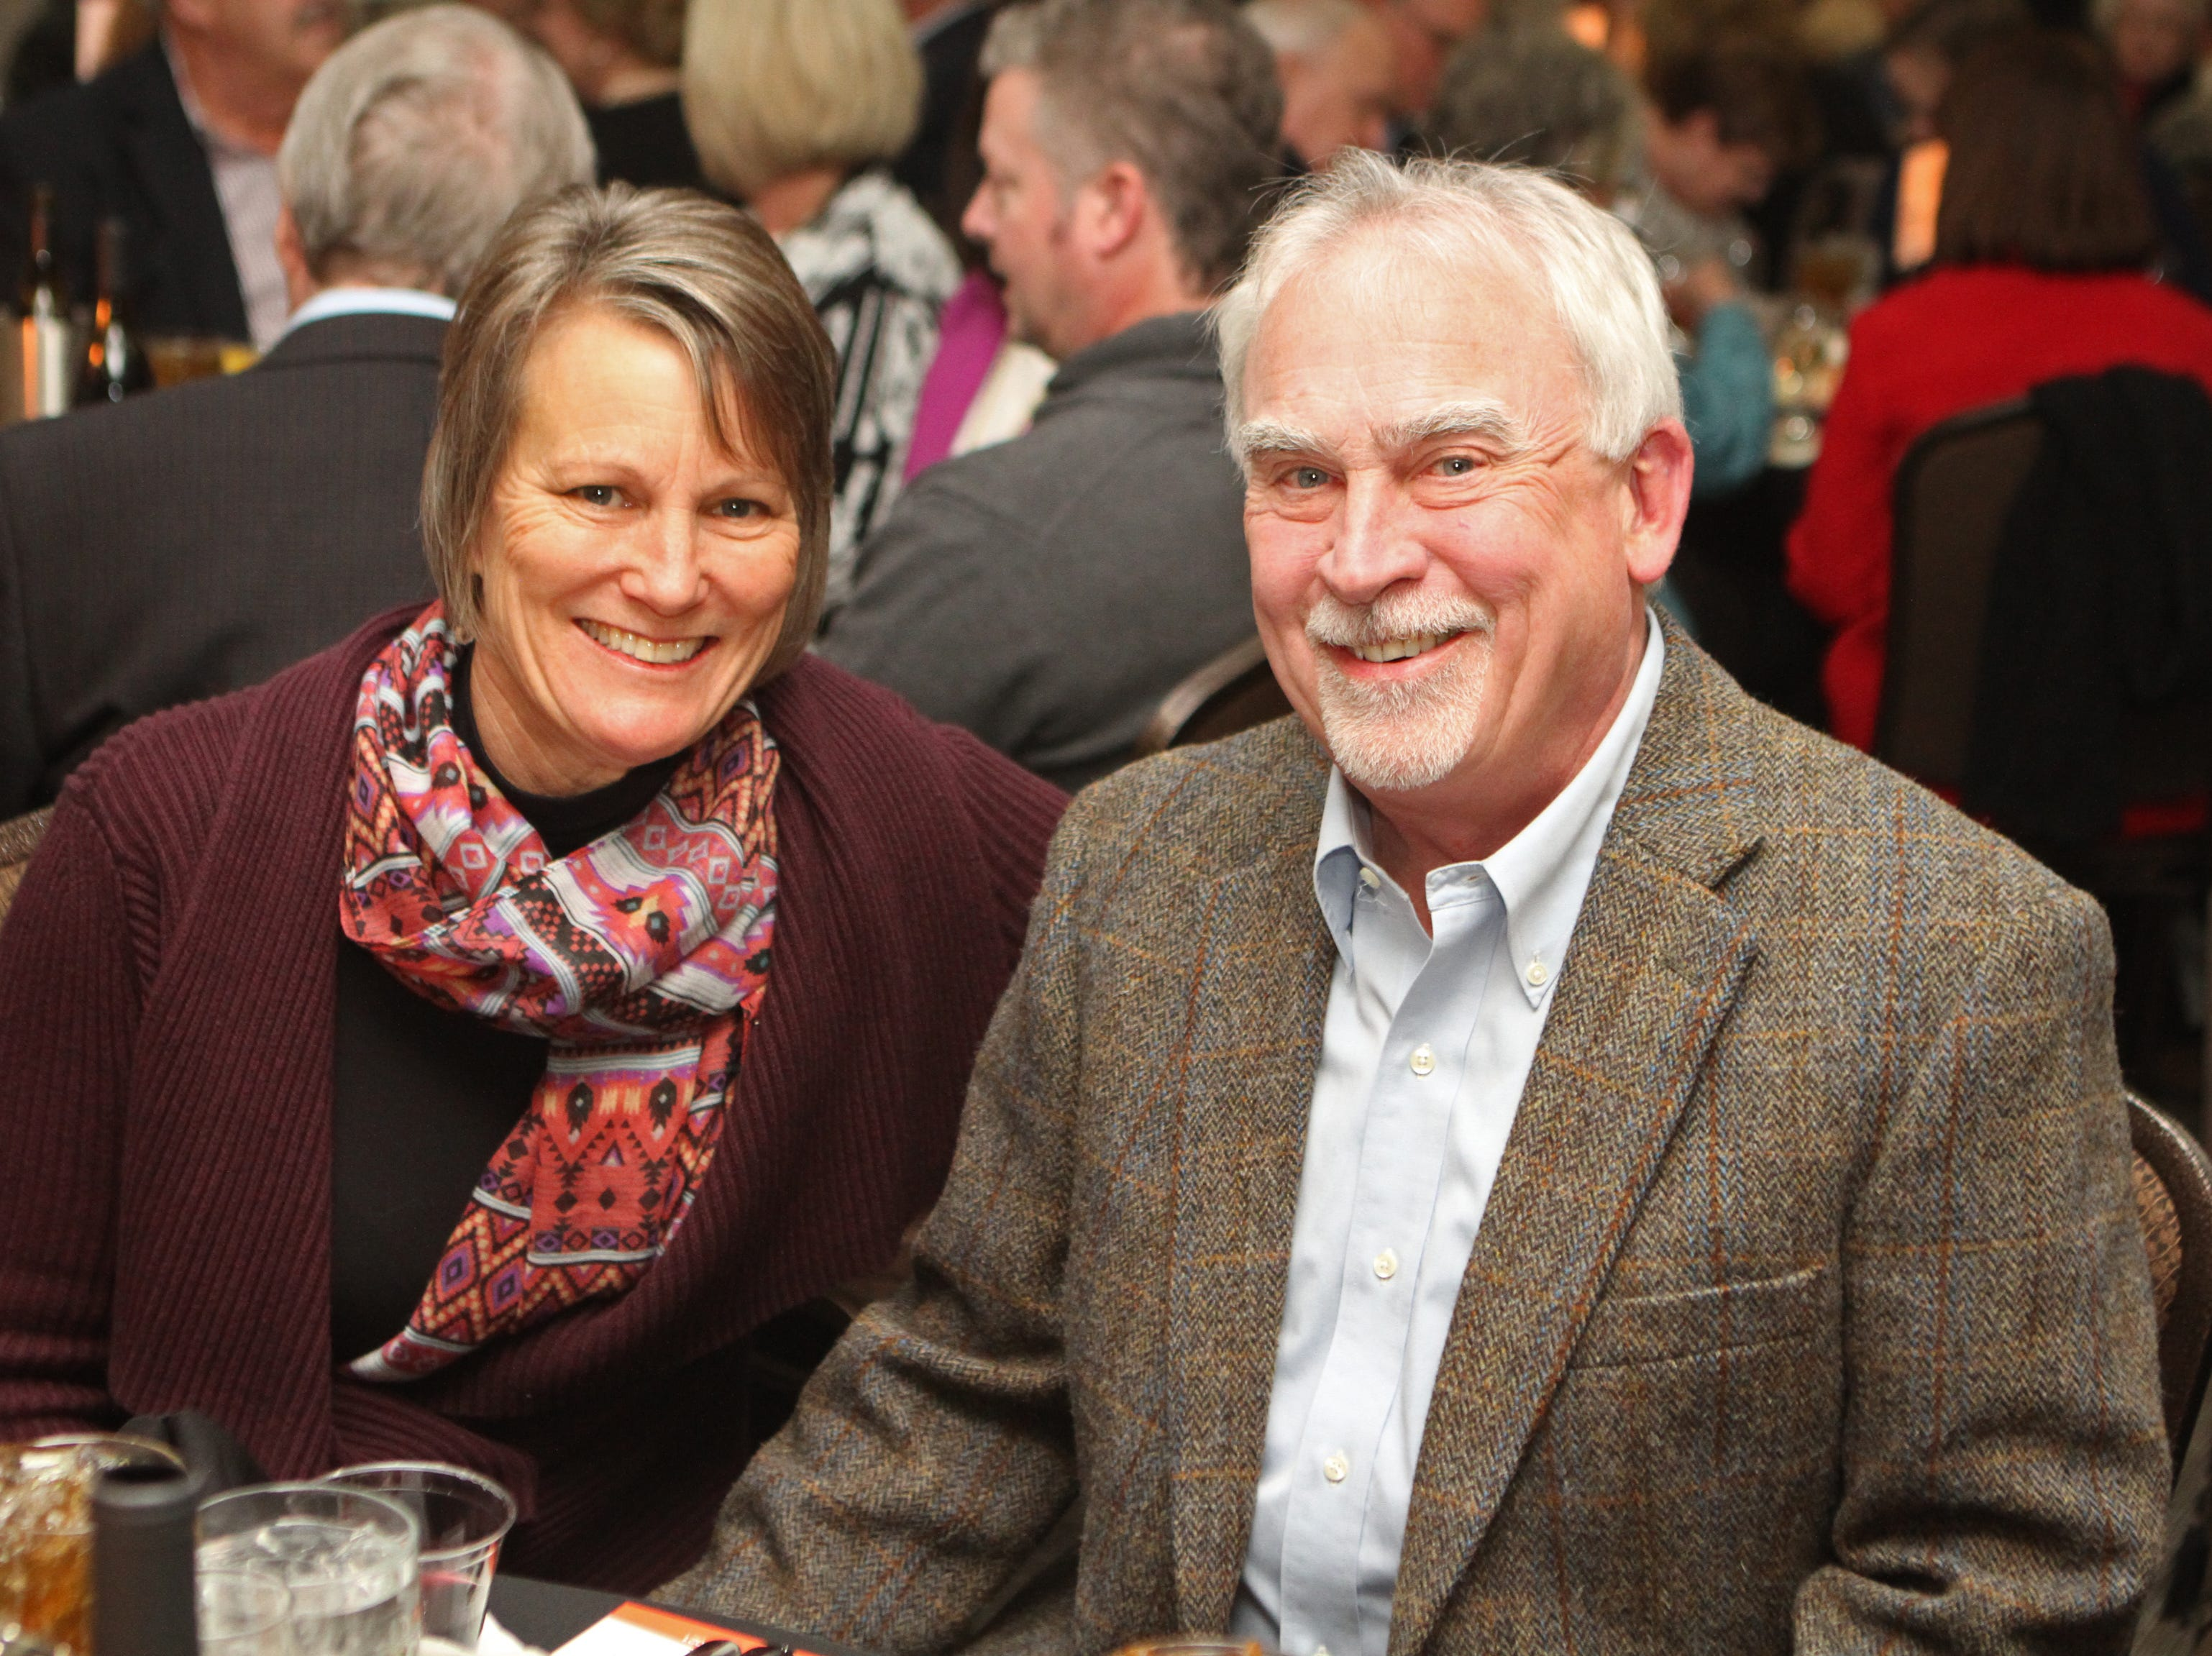 Kris and Charlie Foust at the Loaves and Fishes Capital Campaign Kickoff on Saturday, Nov. 10, 2018.